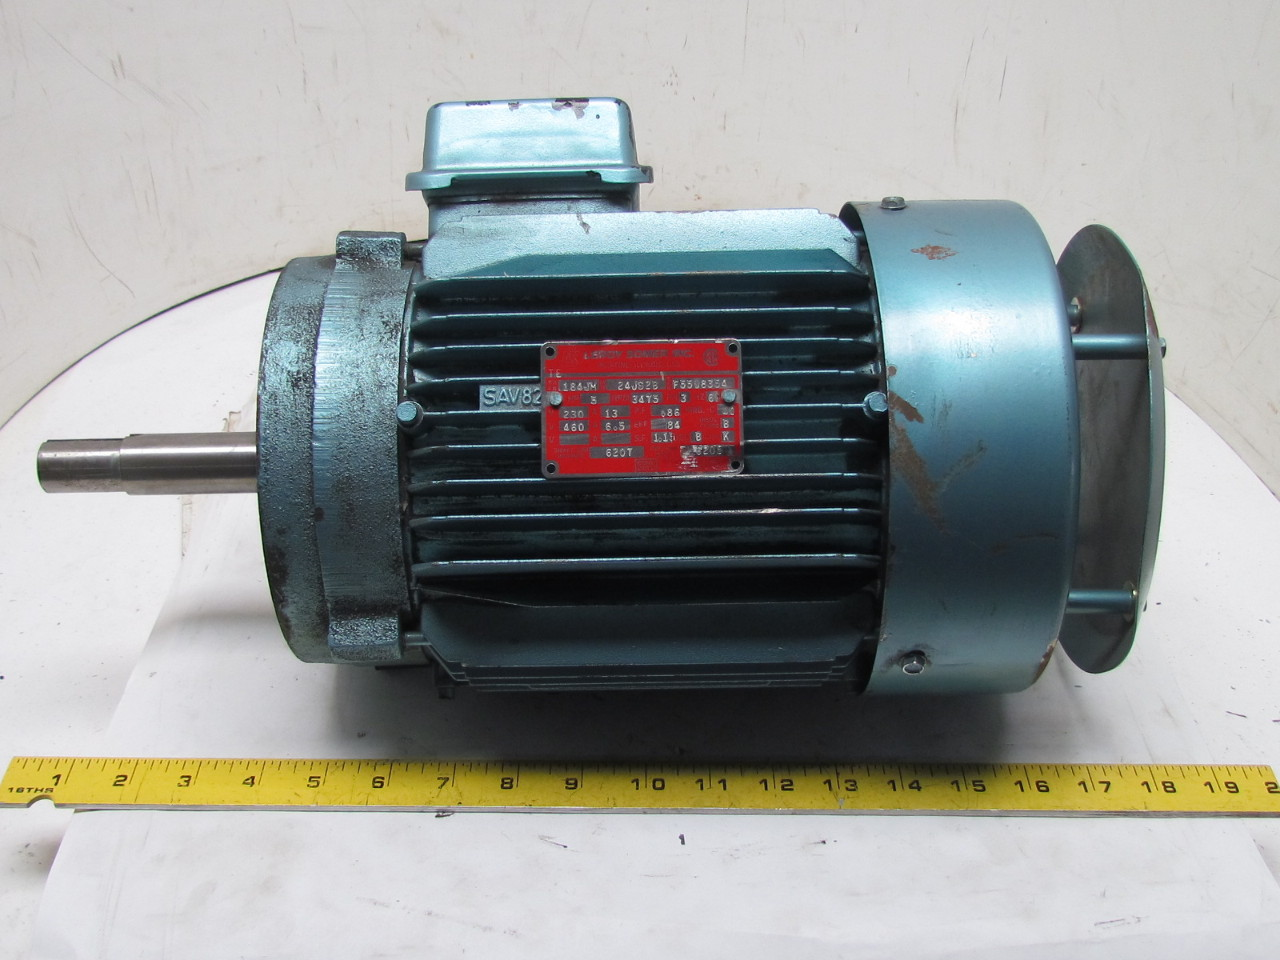 Leroy somer 24js2b 3 phase ac electric motor 5hp 3475 rpm for 3 phase dc motor